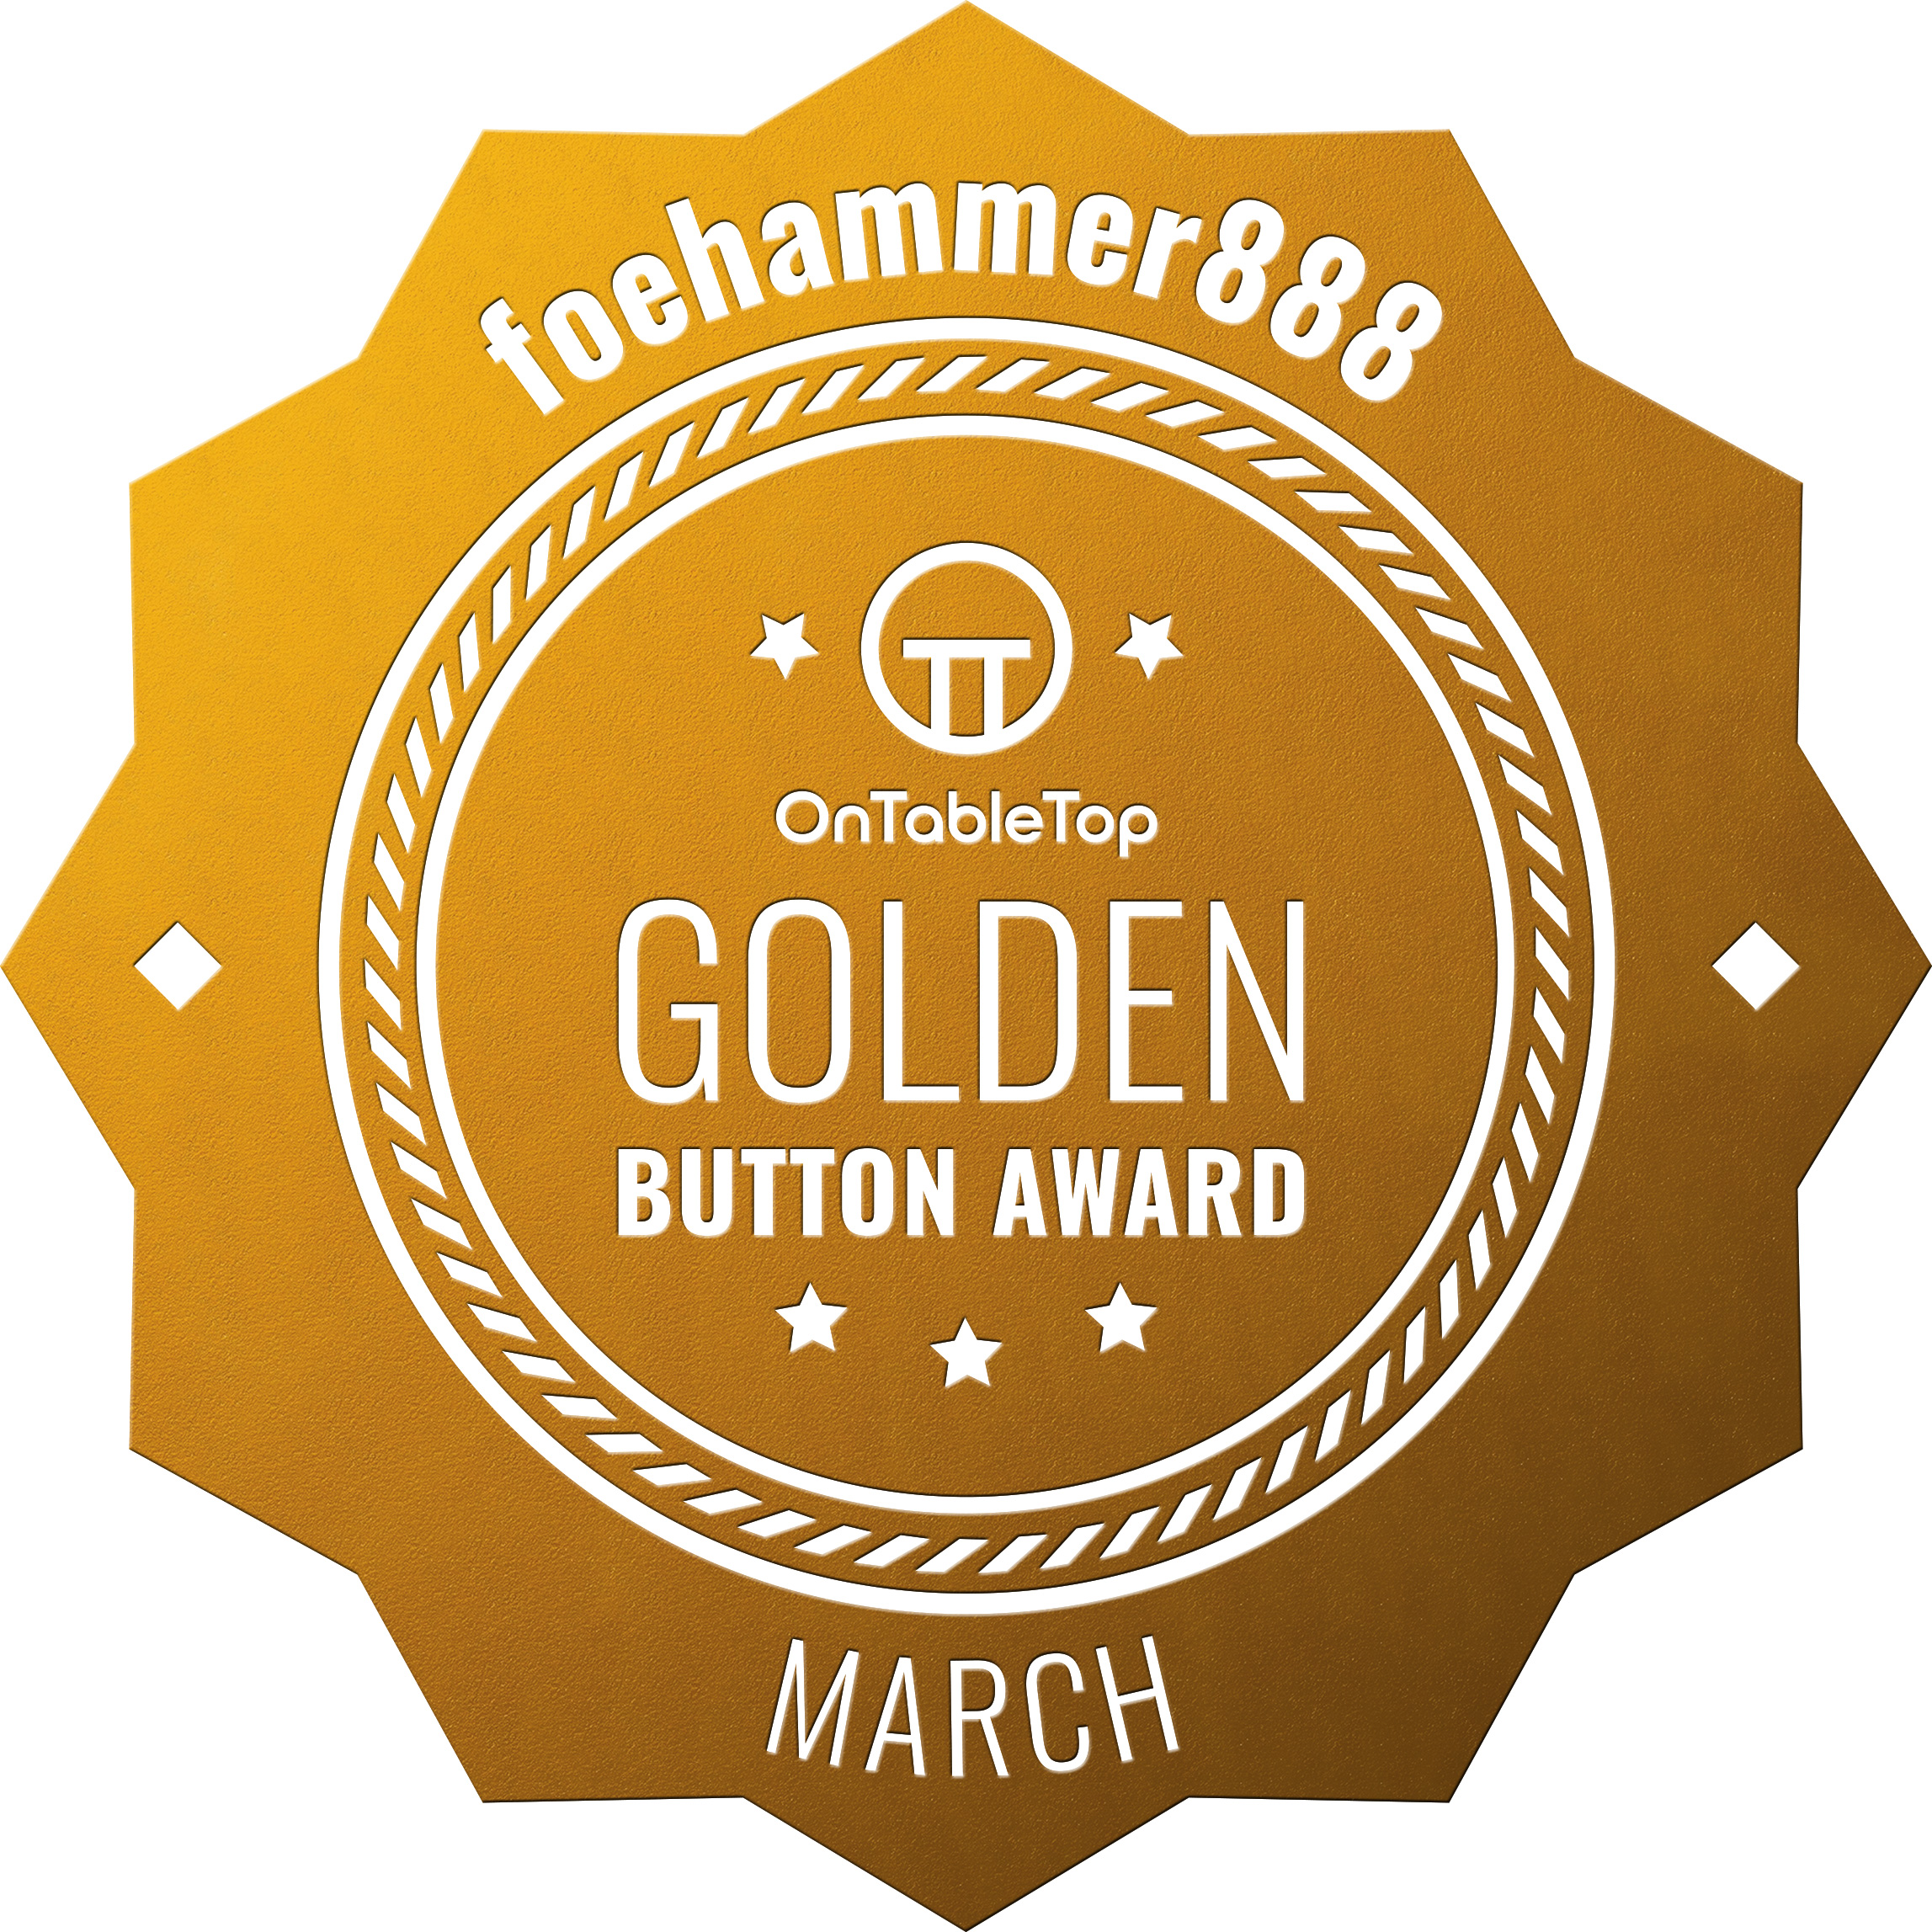 foehammer888-Golden-Button-March-2021